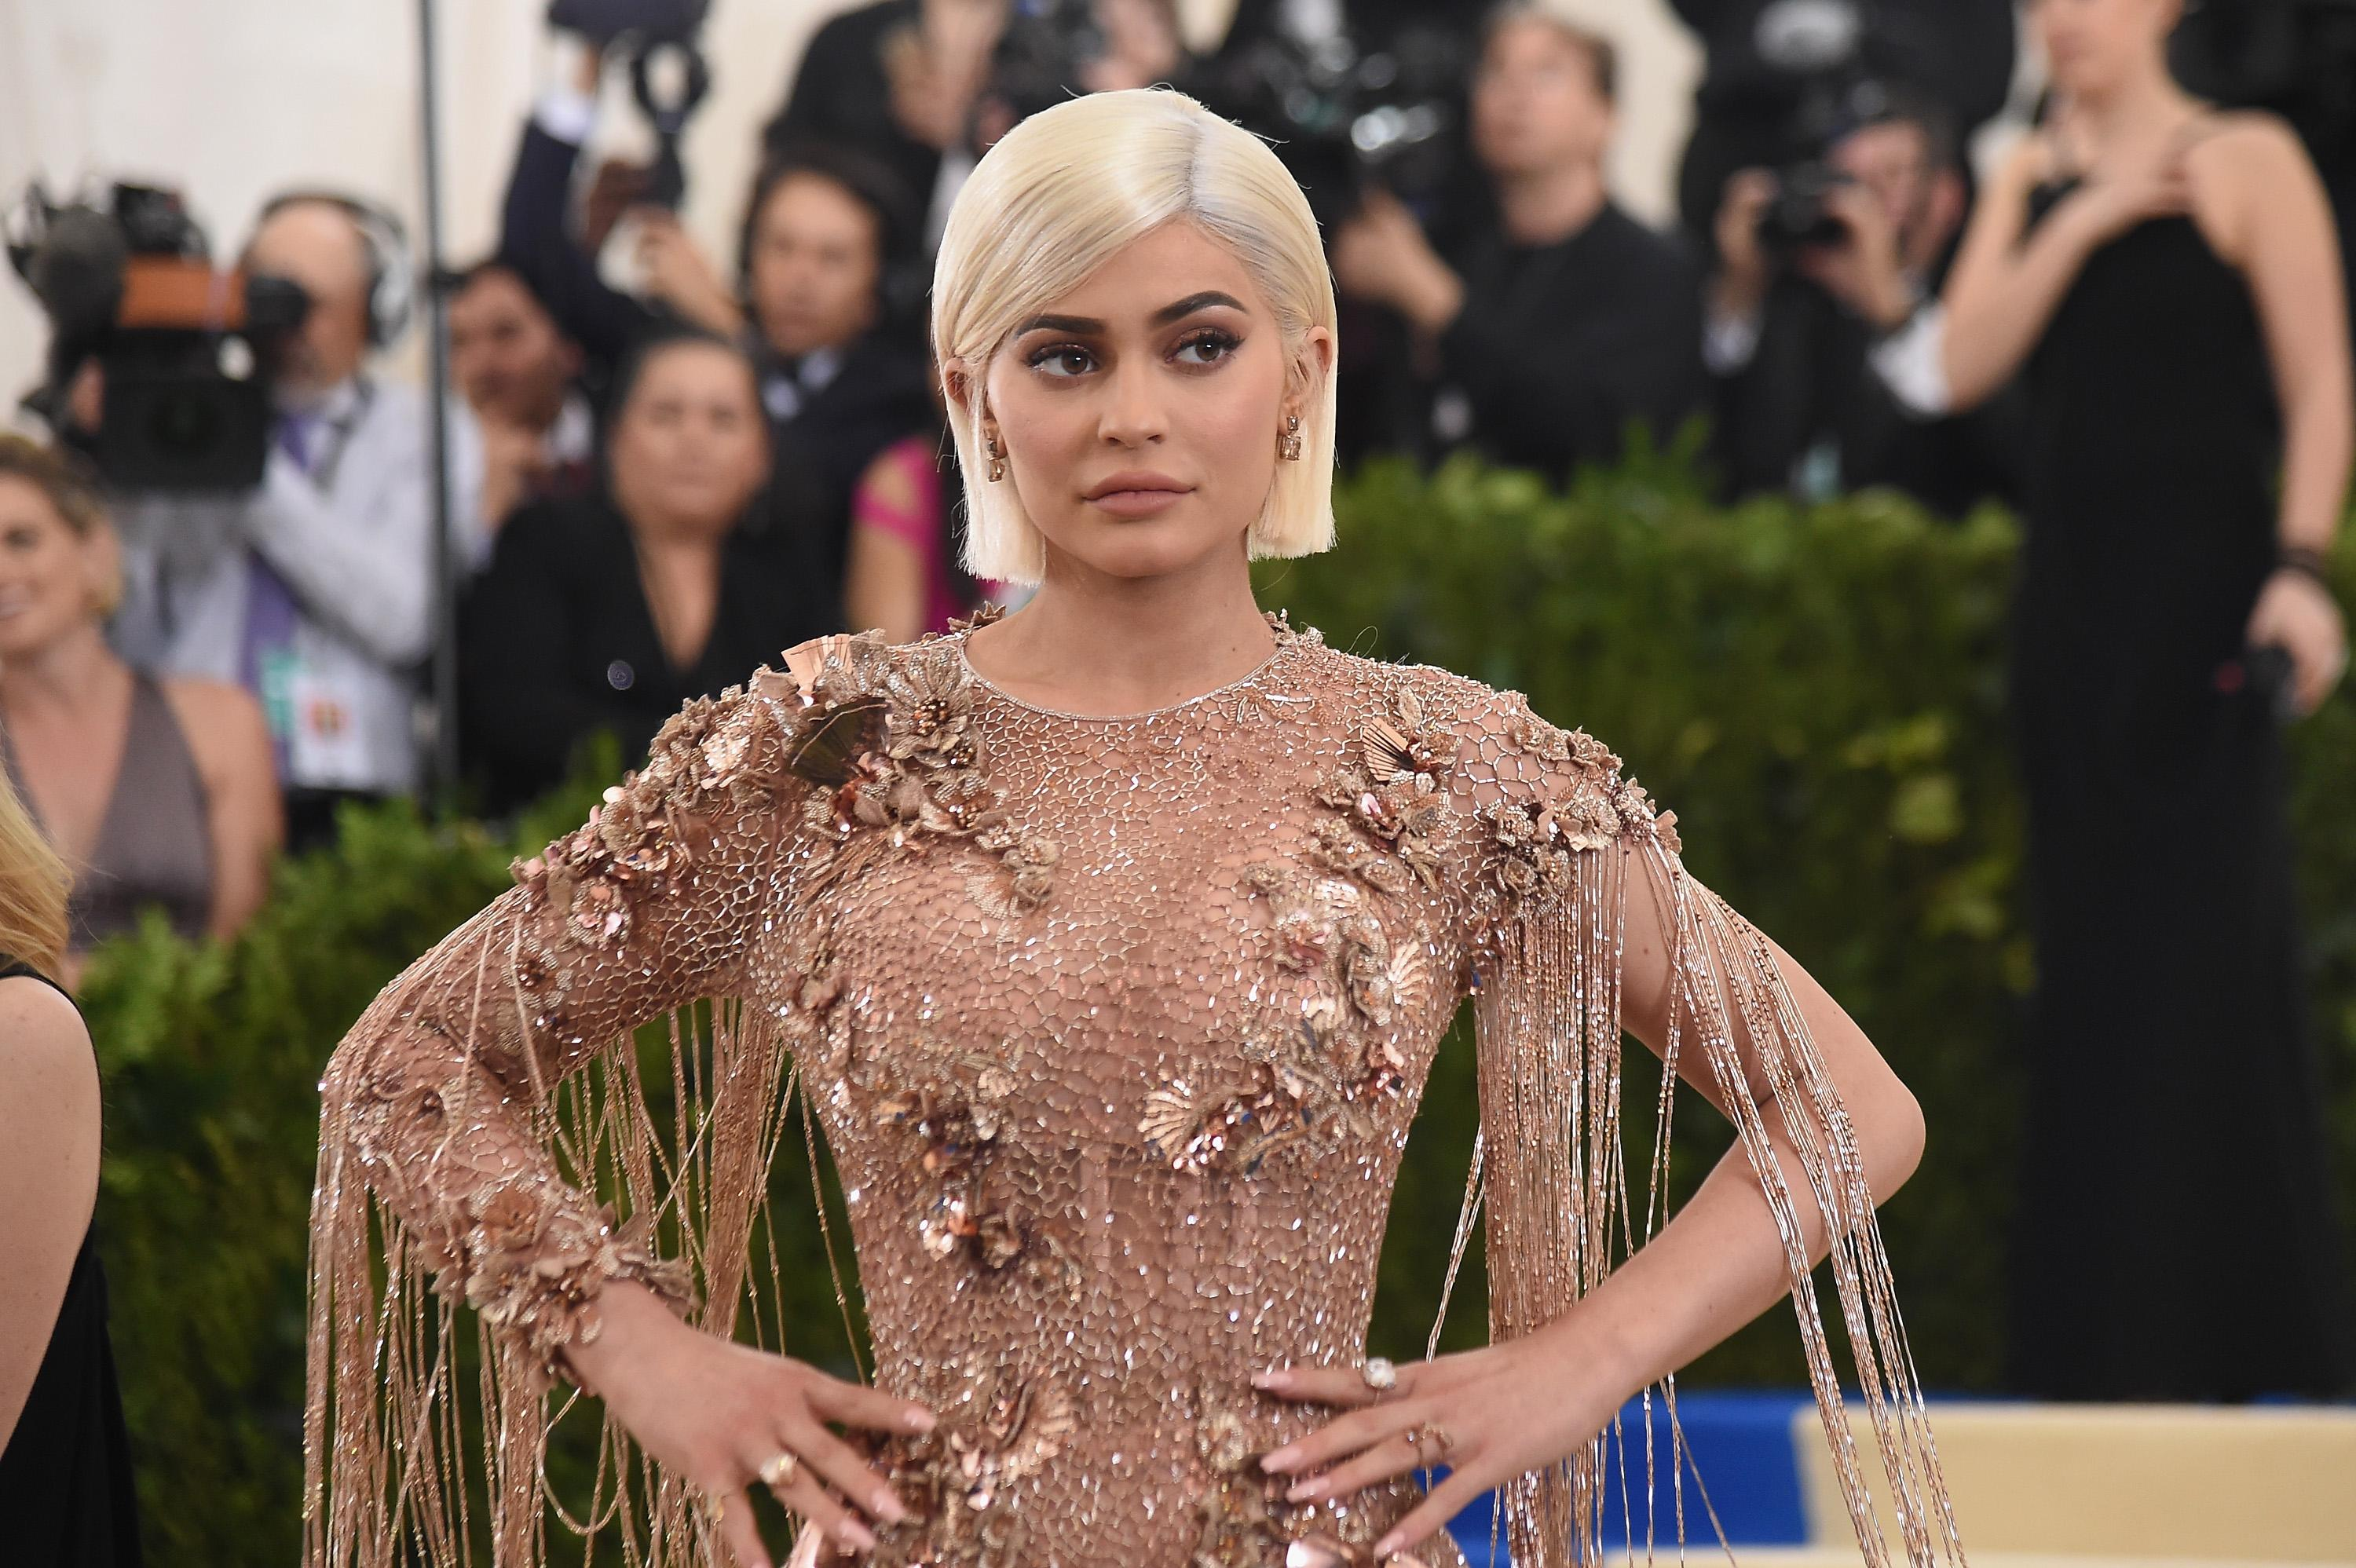 Kylie Jenner's New Private Life: Everything We Know About Her Pregnancy